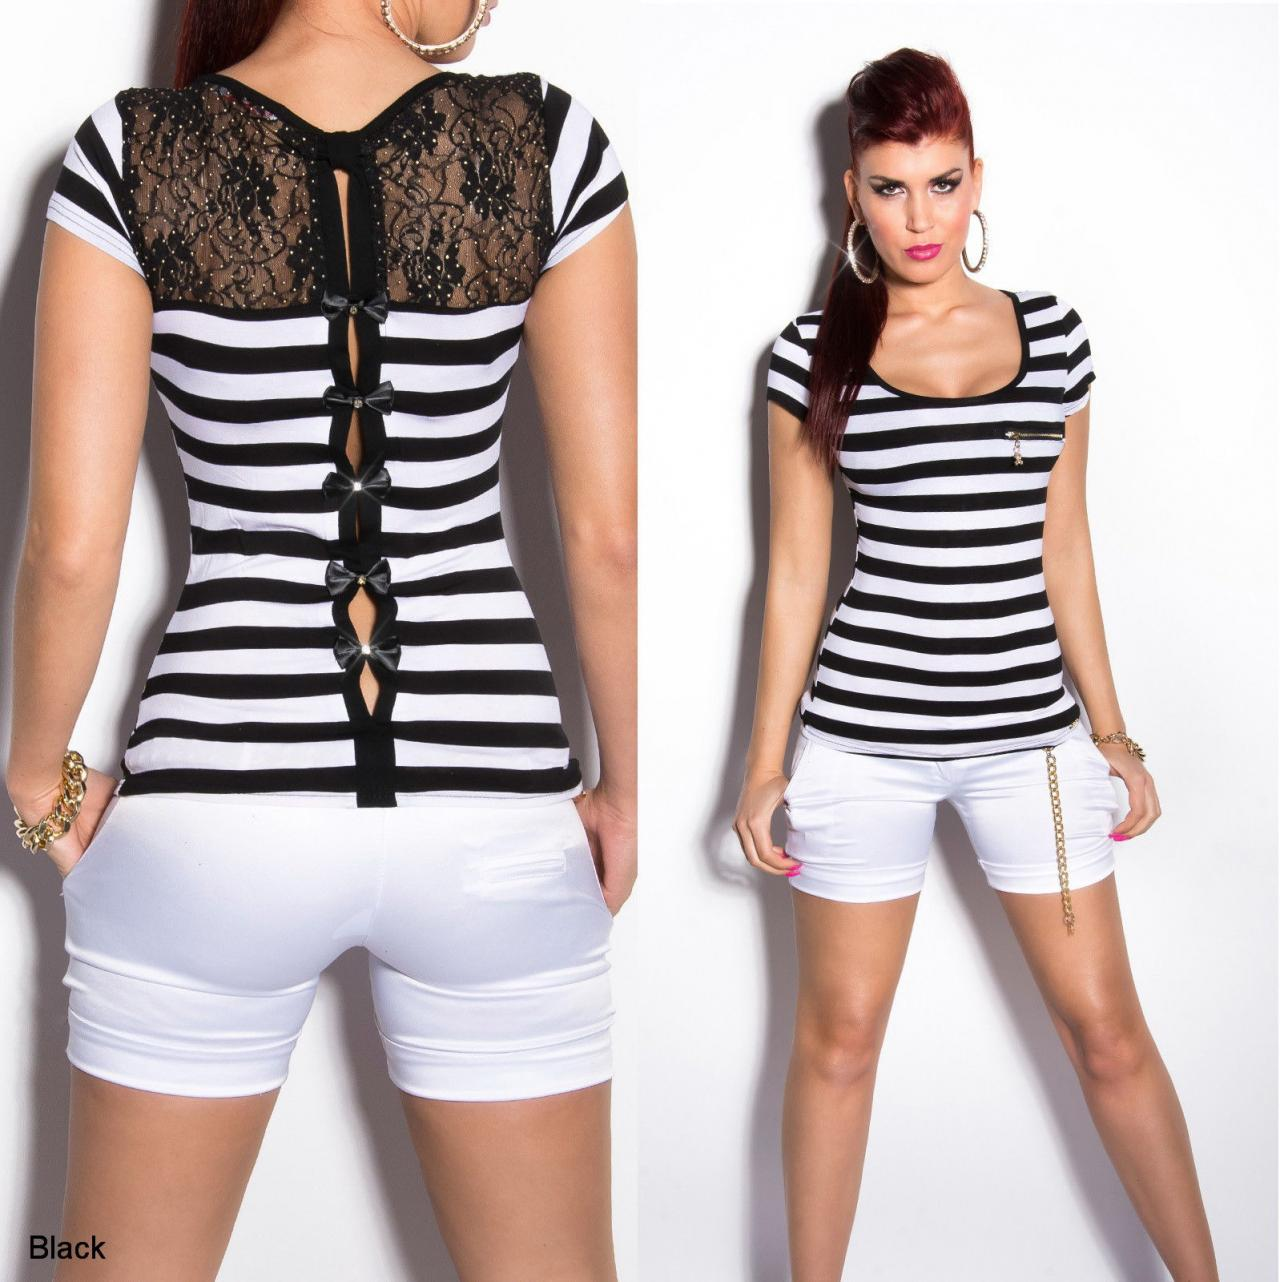 Women's Striped Short Sleeve Top with Bows - S/M, M/L